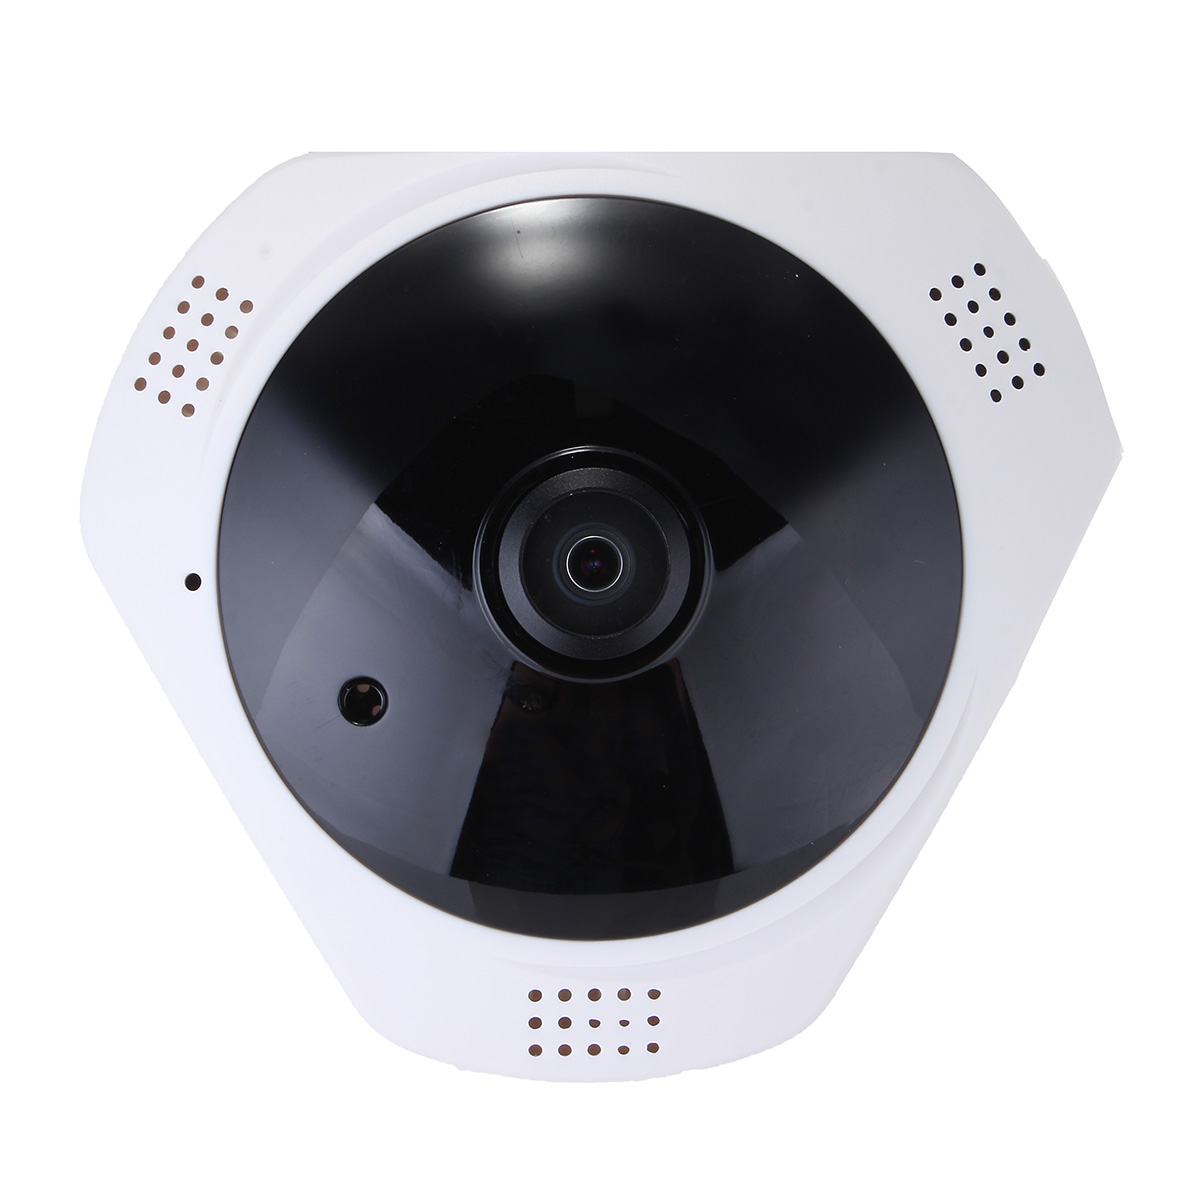 360 degree Panoramic Fisheye IP Camera Wifi Security Surveillance Camera VR 3D Cam CCTV Camera кошельки leo ventoni кошелек